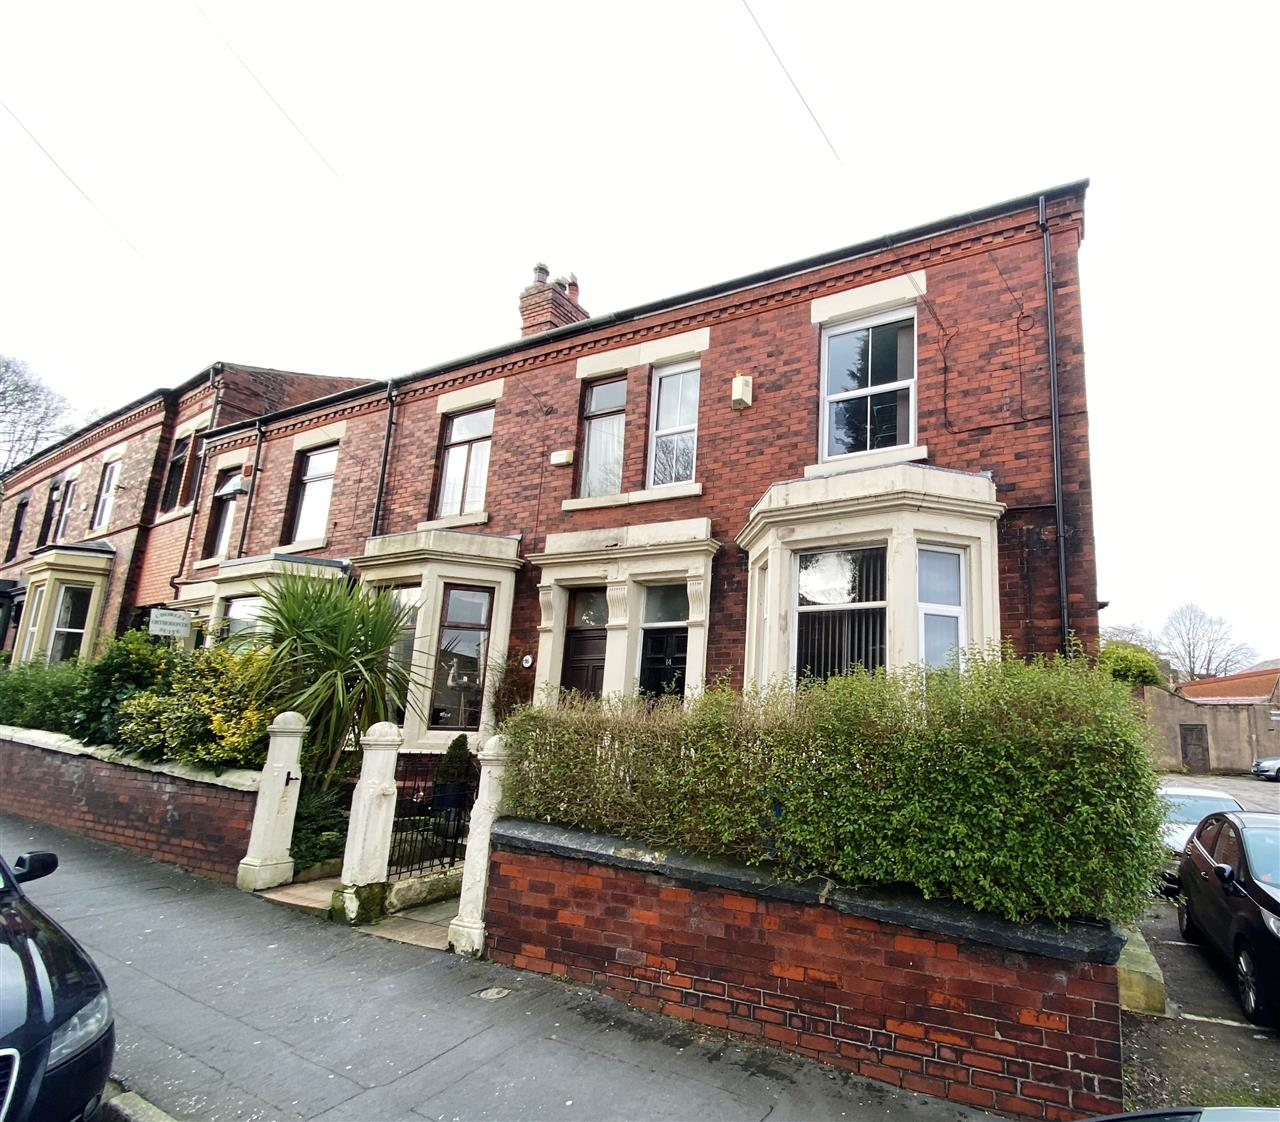 2 bed apartment to rent in A West Street, Chorley, Chorley, PR7